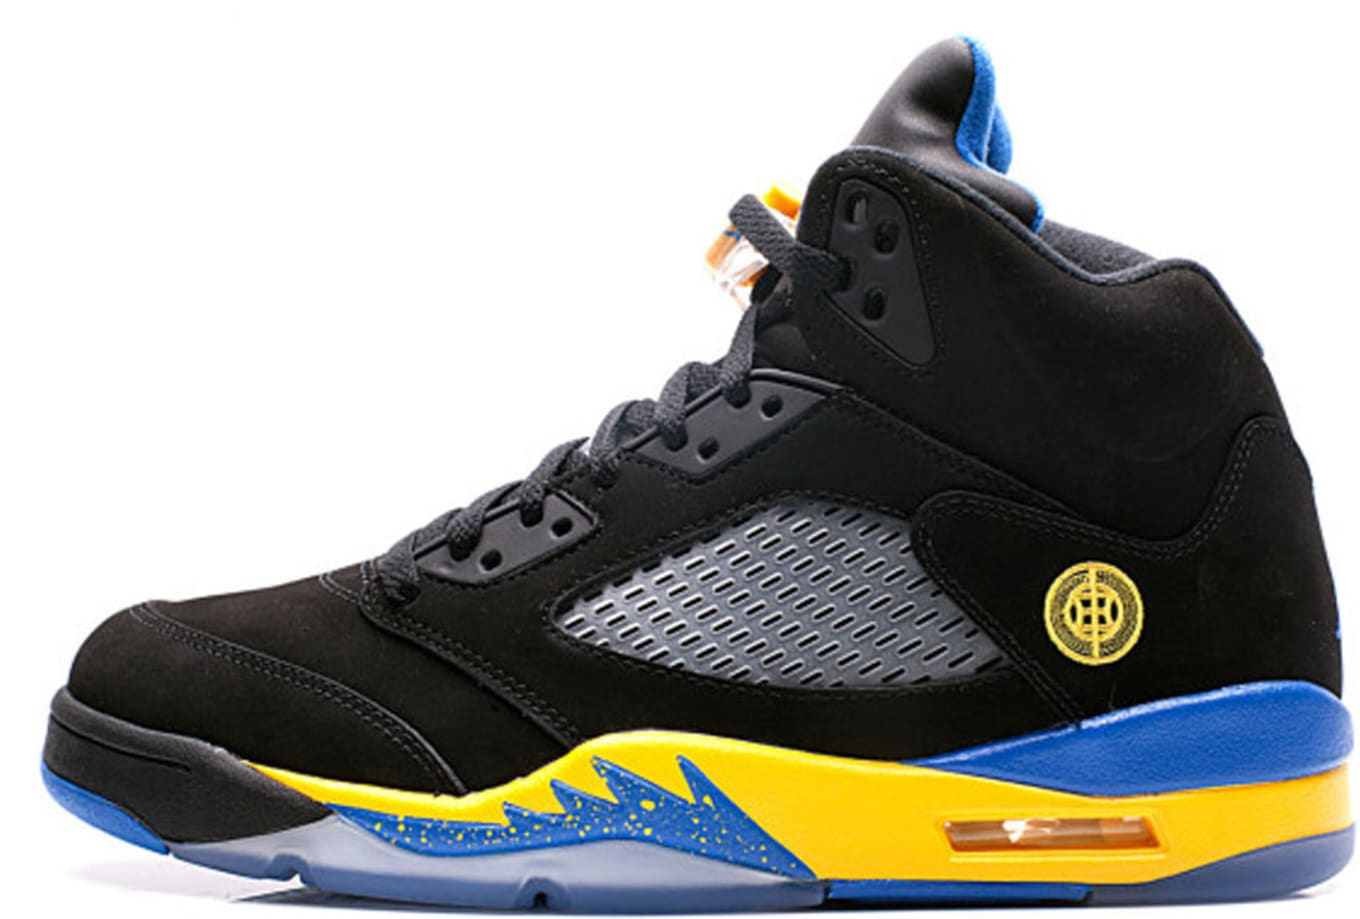 9aa4ff763c5 Air Jordan 5 Price Guide | Sole Collector